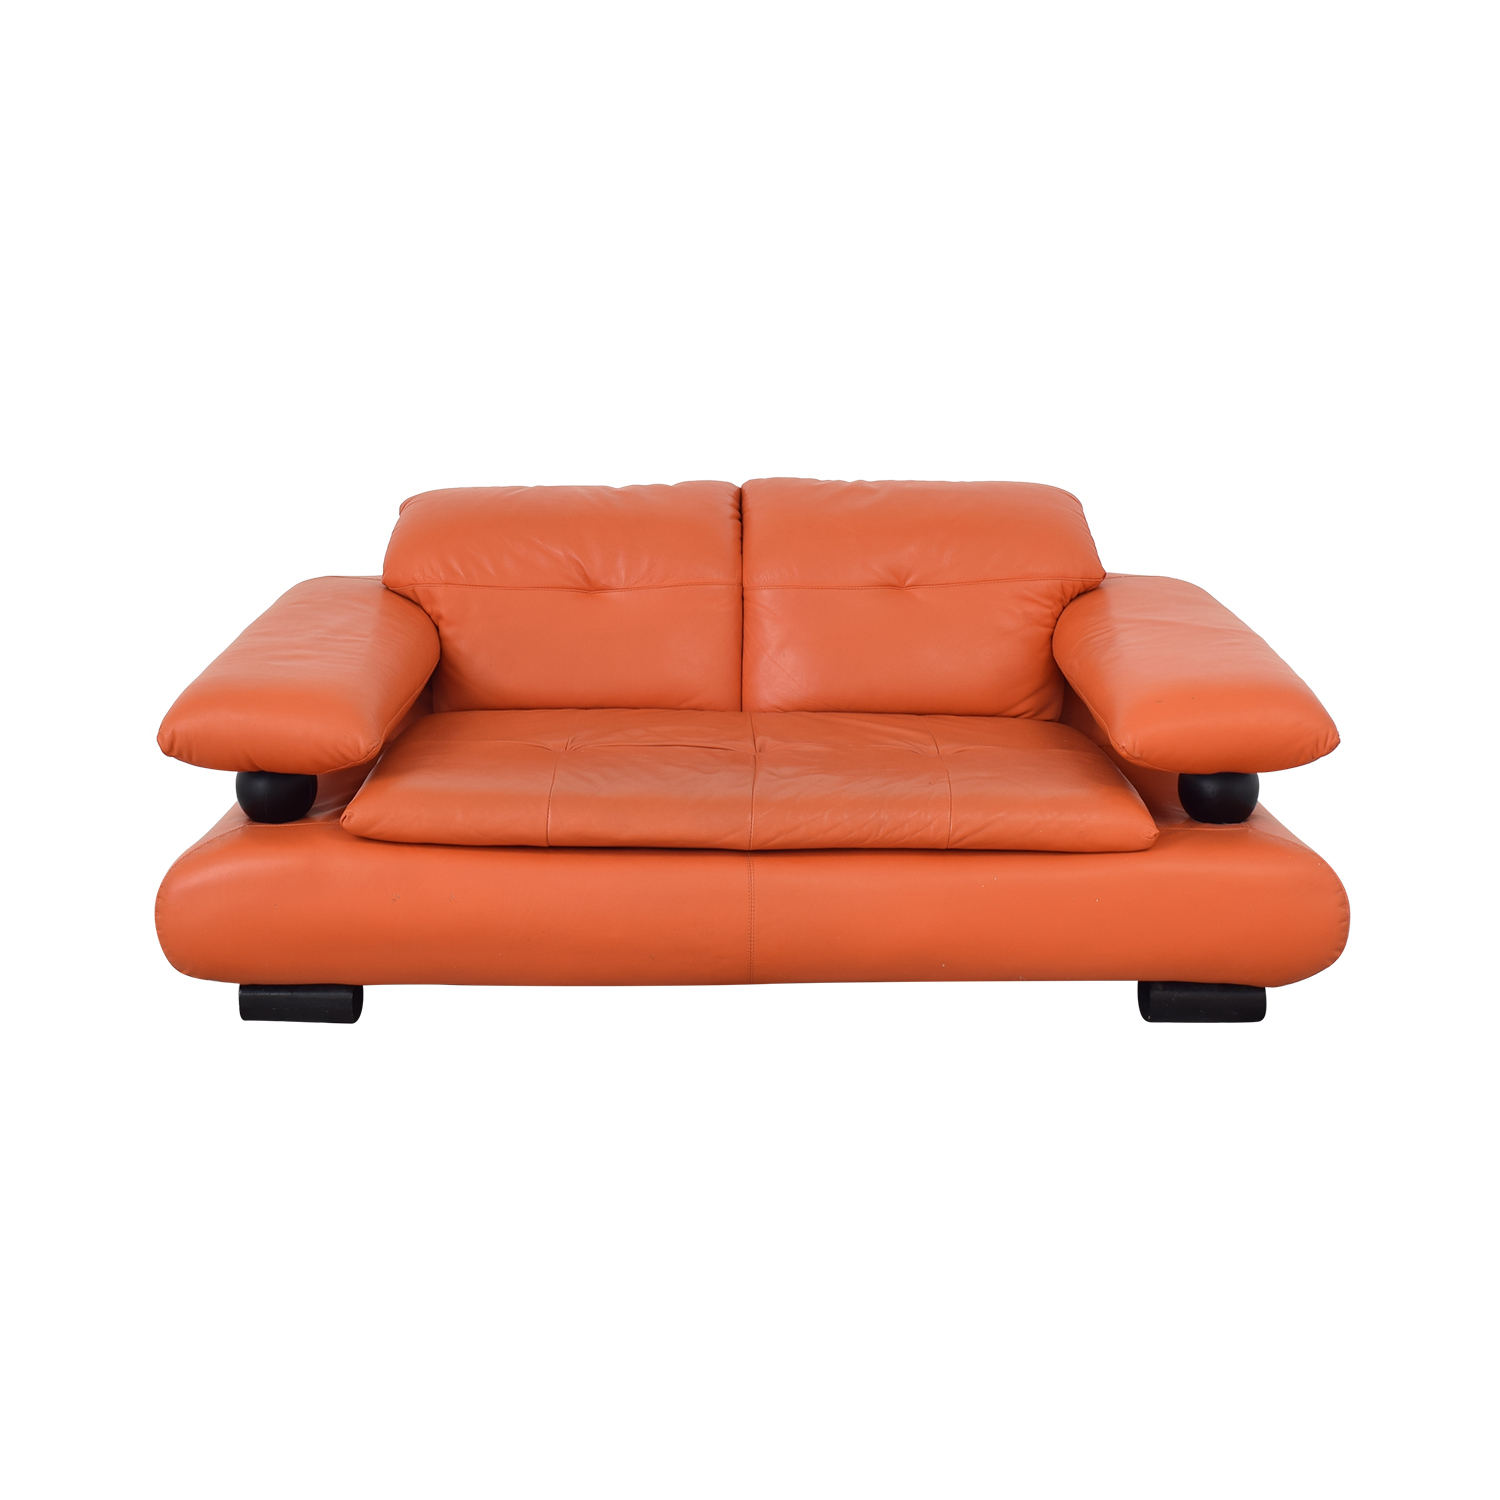 Wei Laishi Wei Laishi Modern Adjustable Loveseat discount